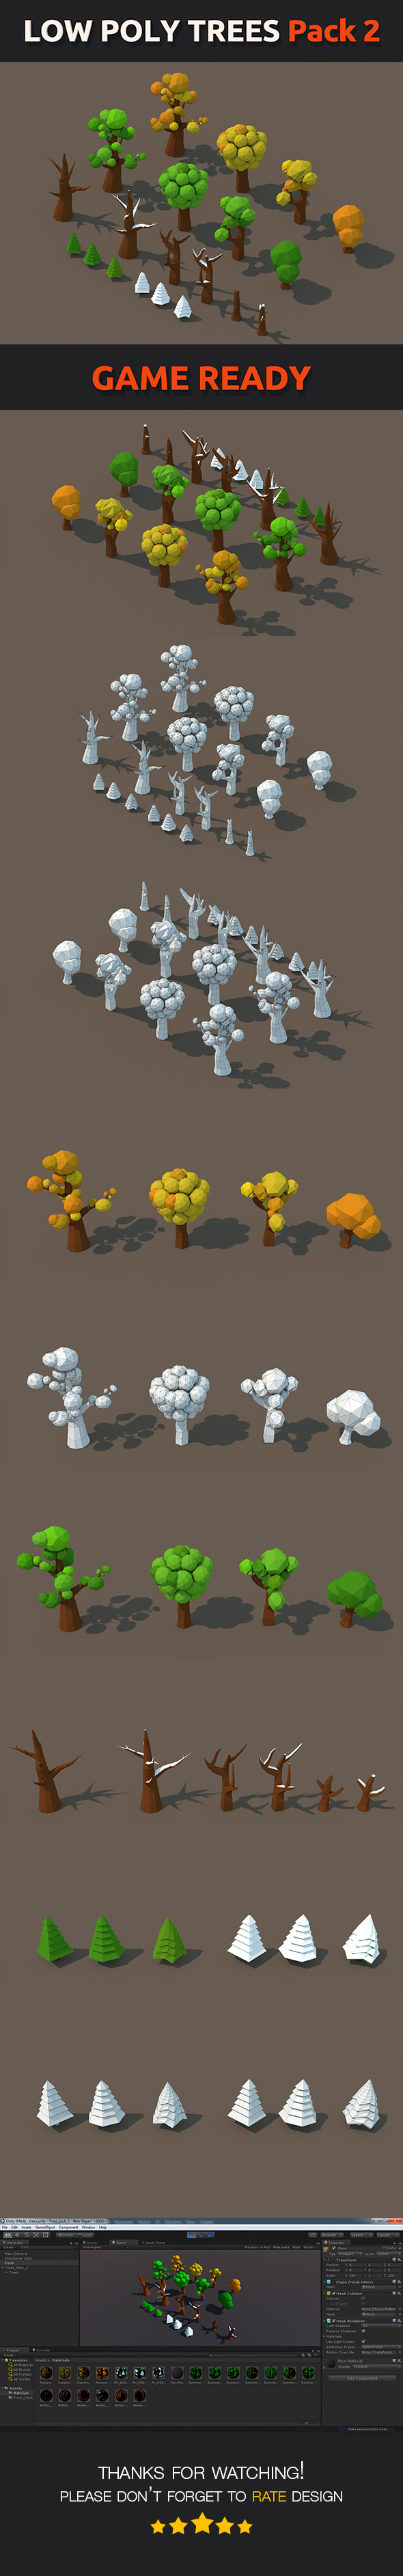 Low Poly Trees Pack 2 - 3DOcean Item for Sale